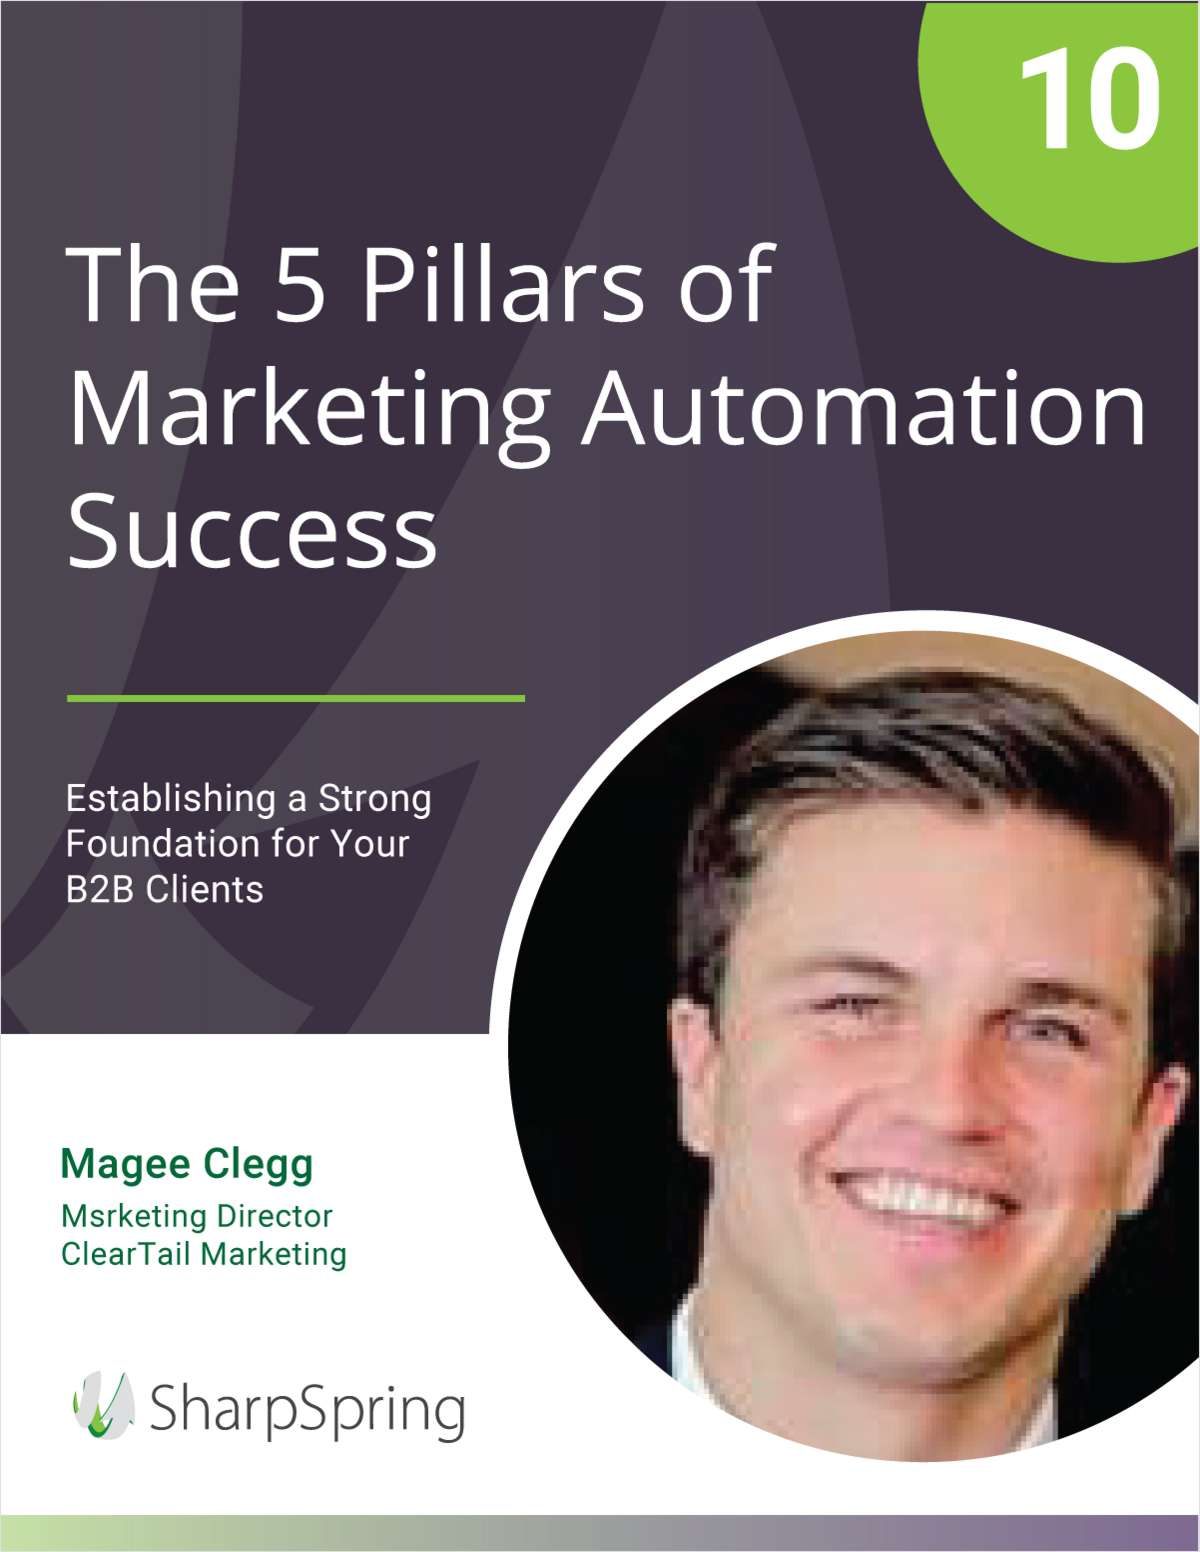 5 Pillars of Marketing Automation Success